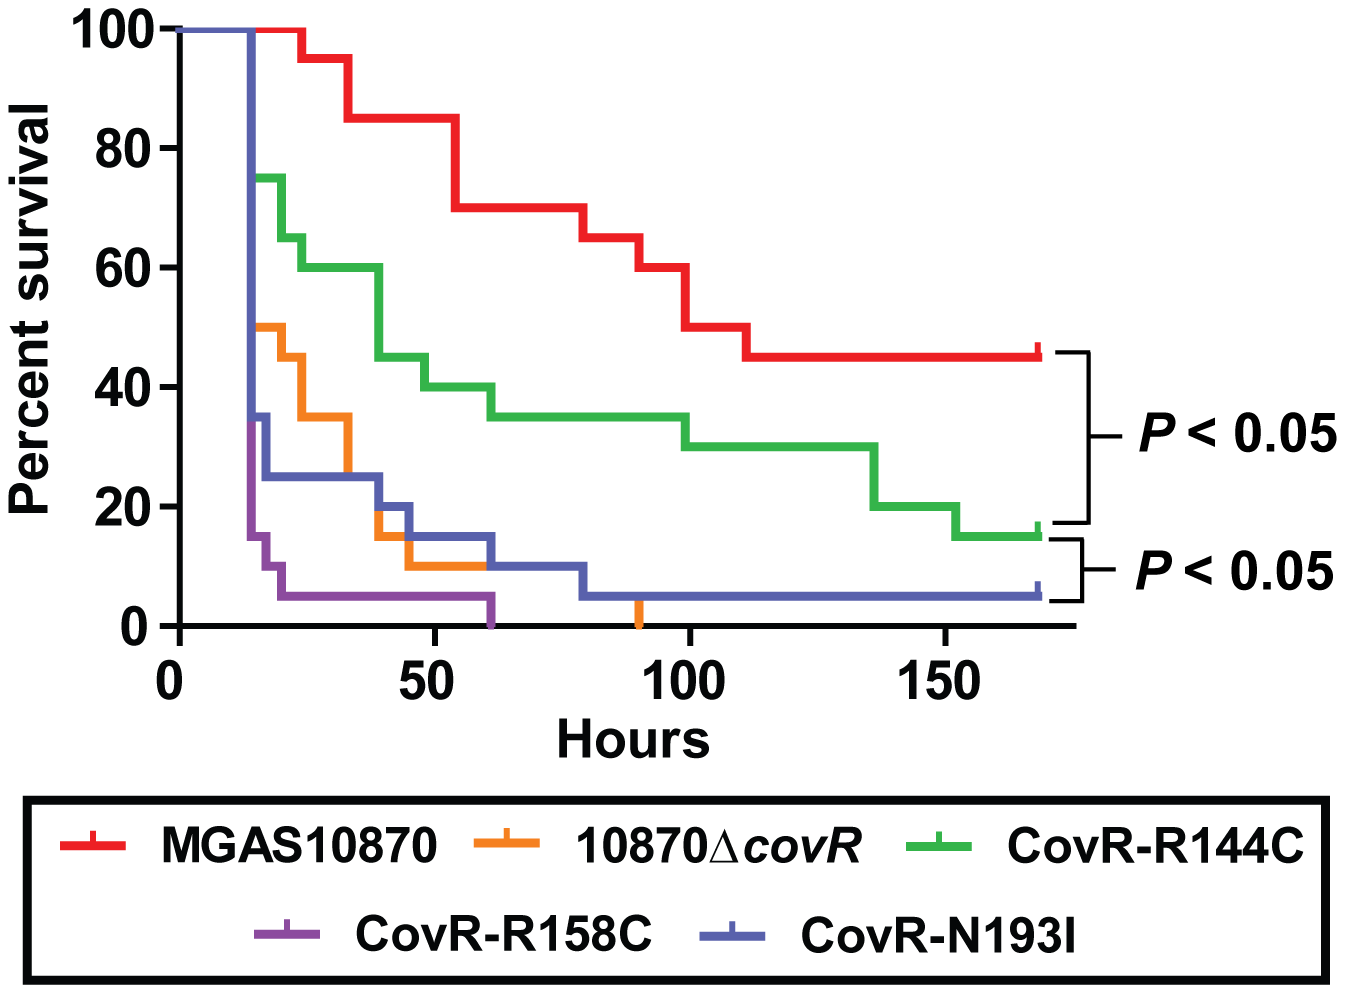 CovR single amino acid replacements result in differential virulence in mice.